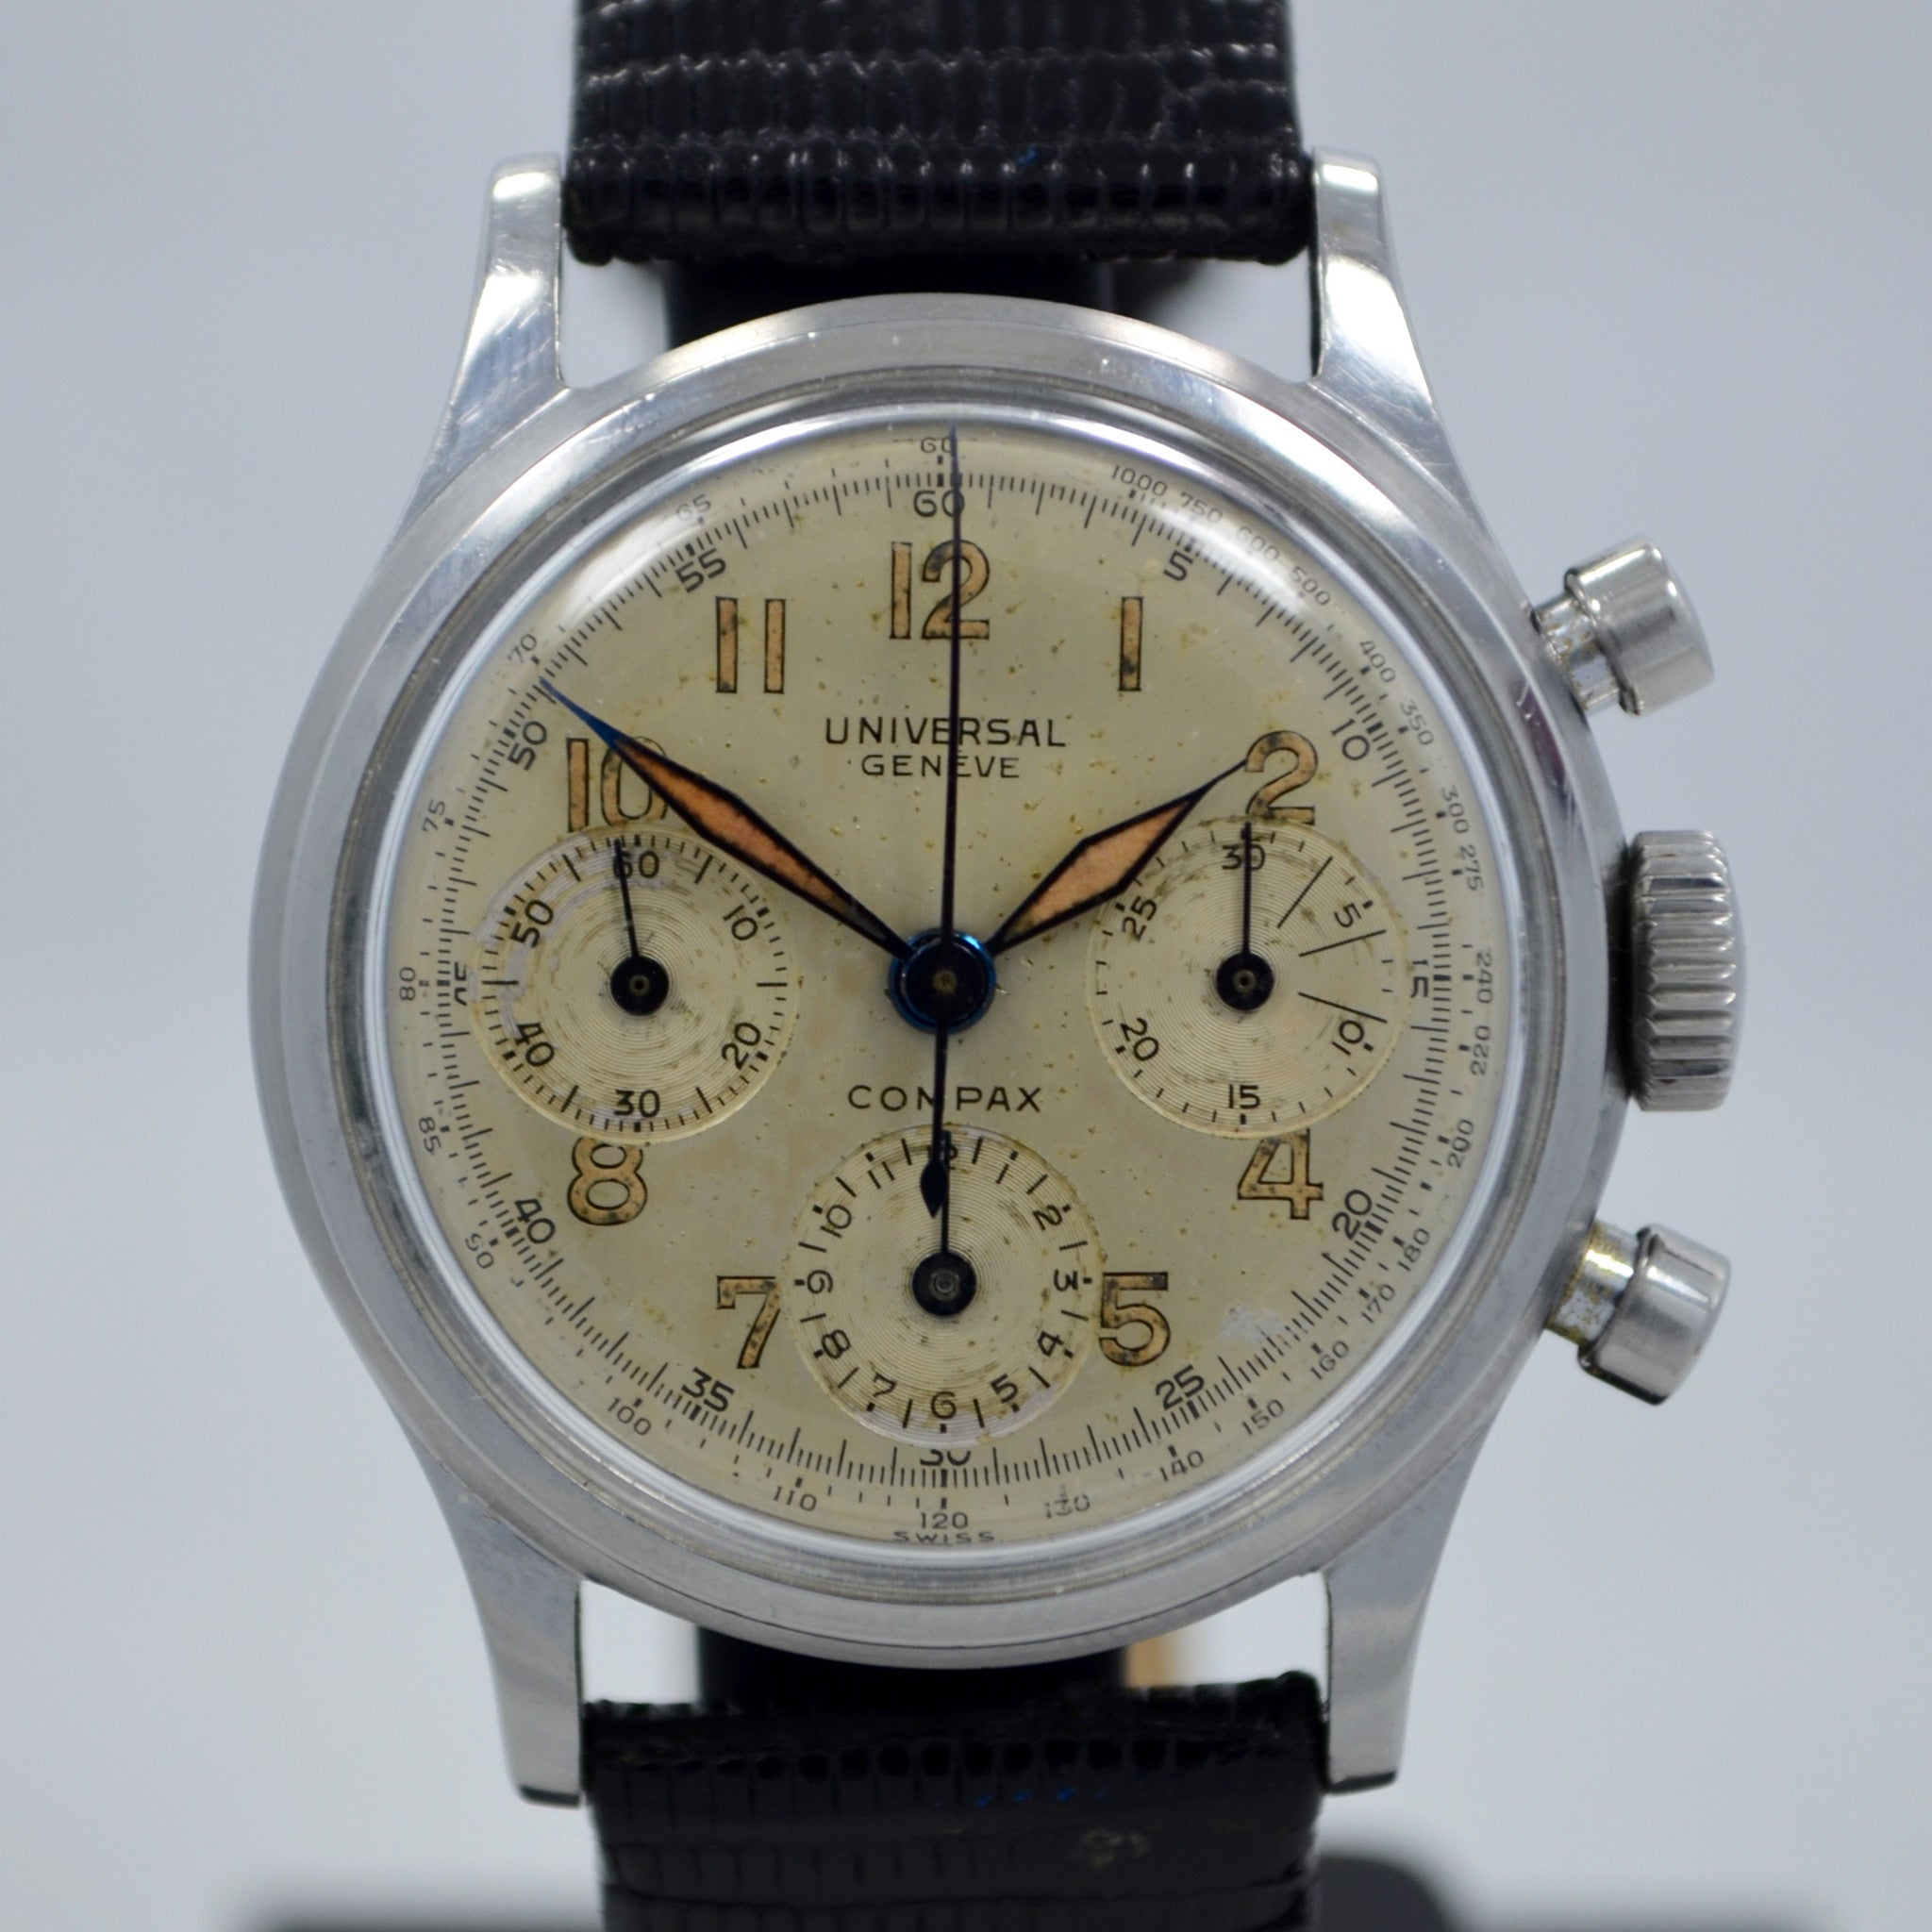 Vintage Universal Geneve Compax 22278 Manual Steel Chronograph Cal. 281 Watch - Hashtag Watch Company